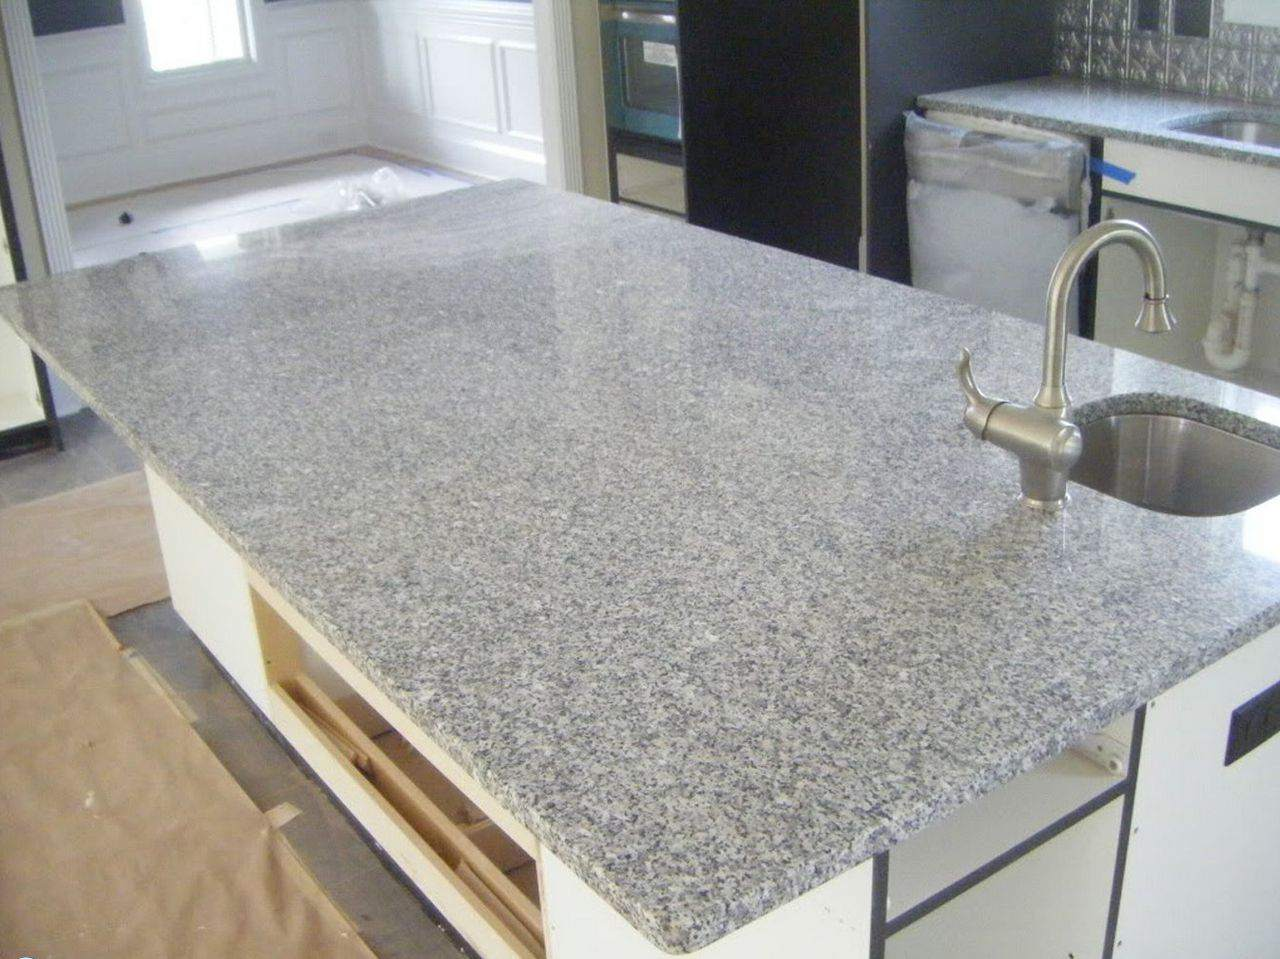 9 Ways to Cover Kitchen or Bath Countertops